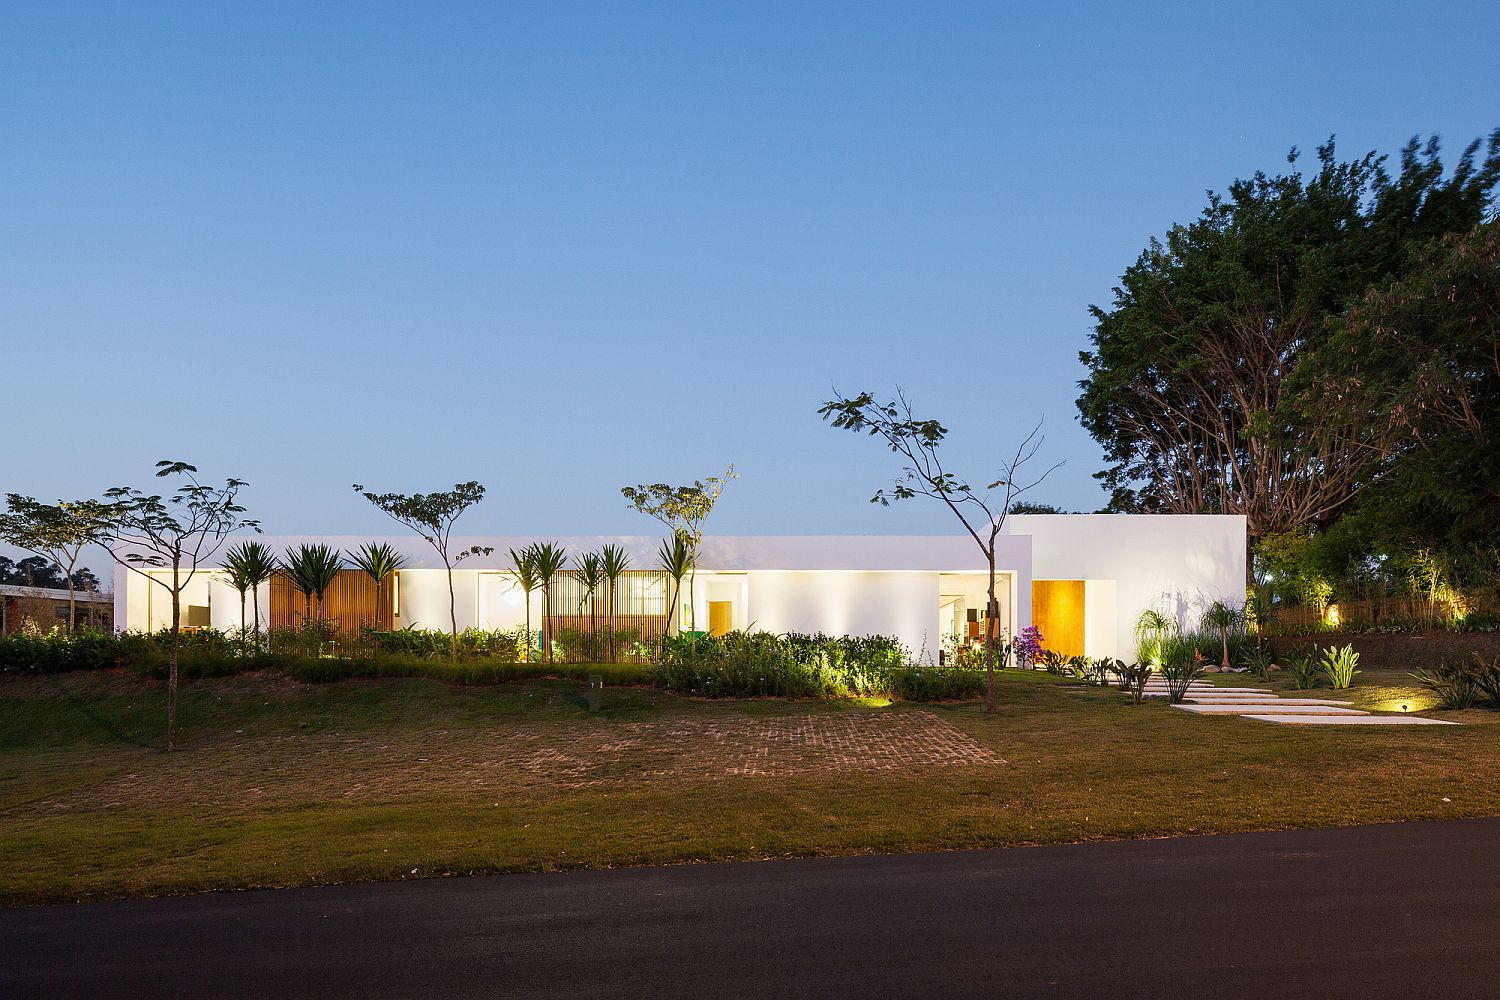 Street-facade-of-the-private-family-house-in-Itu-Brazil